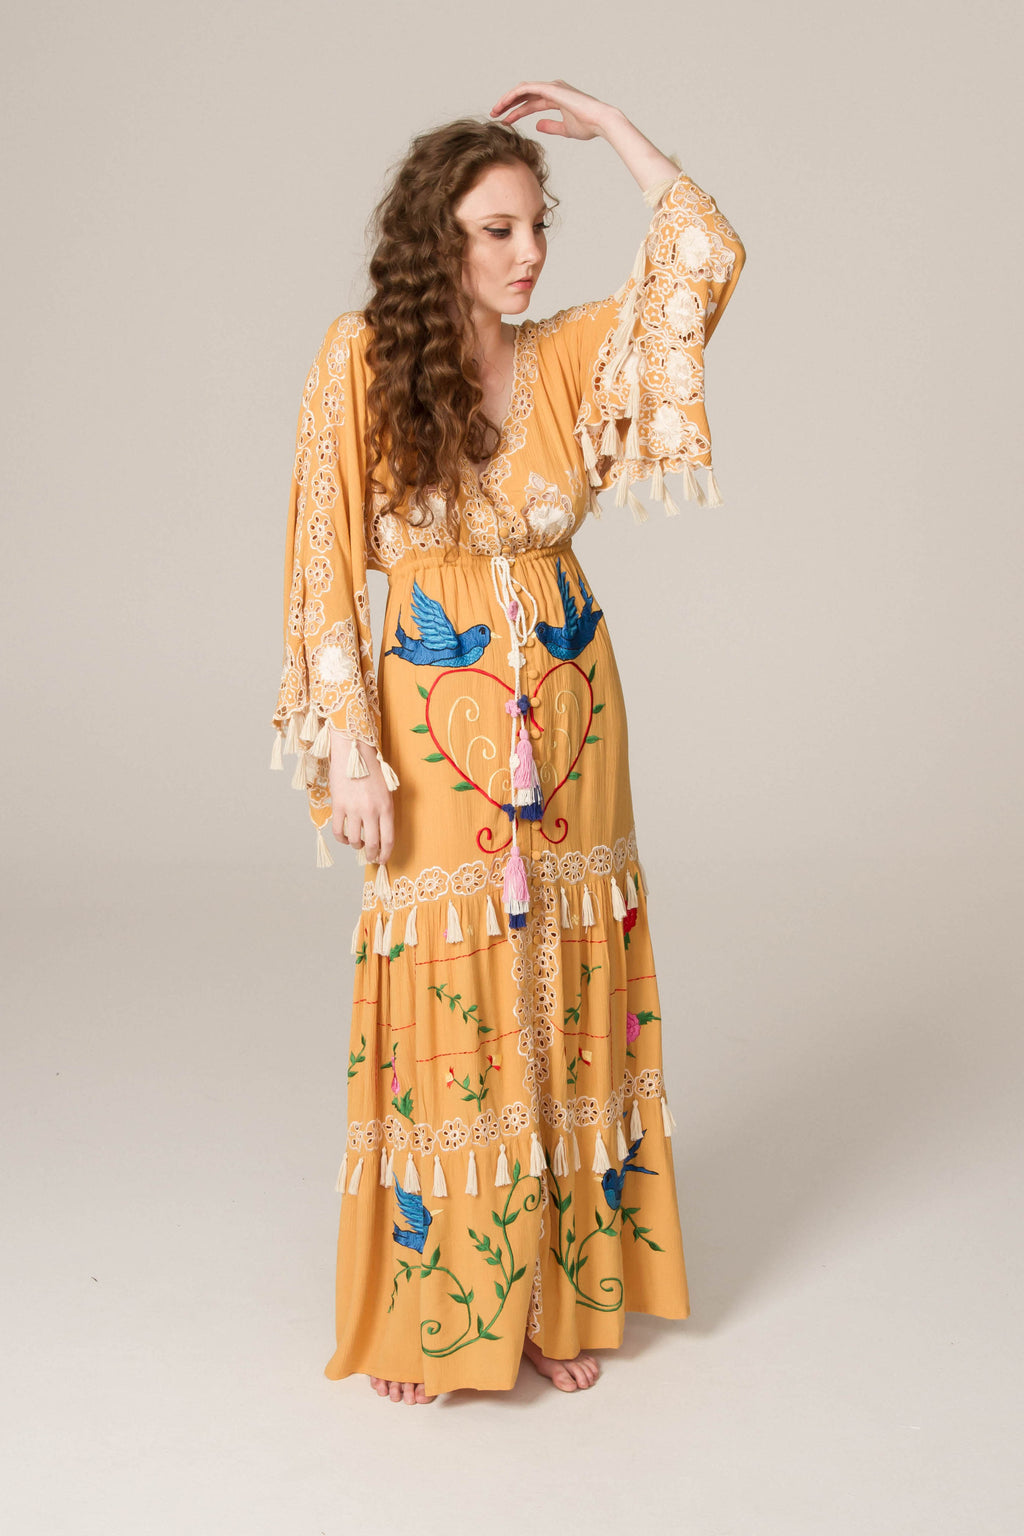 'HEART ON THE FLOOR' - HAND EMBROIDERED DUSTER & MAXI DRESS - GOLD WITH MULTI